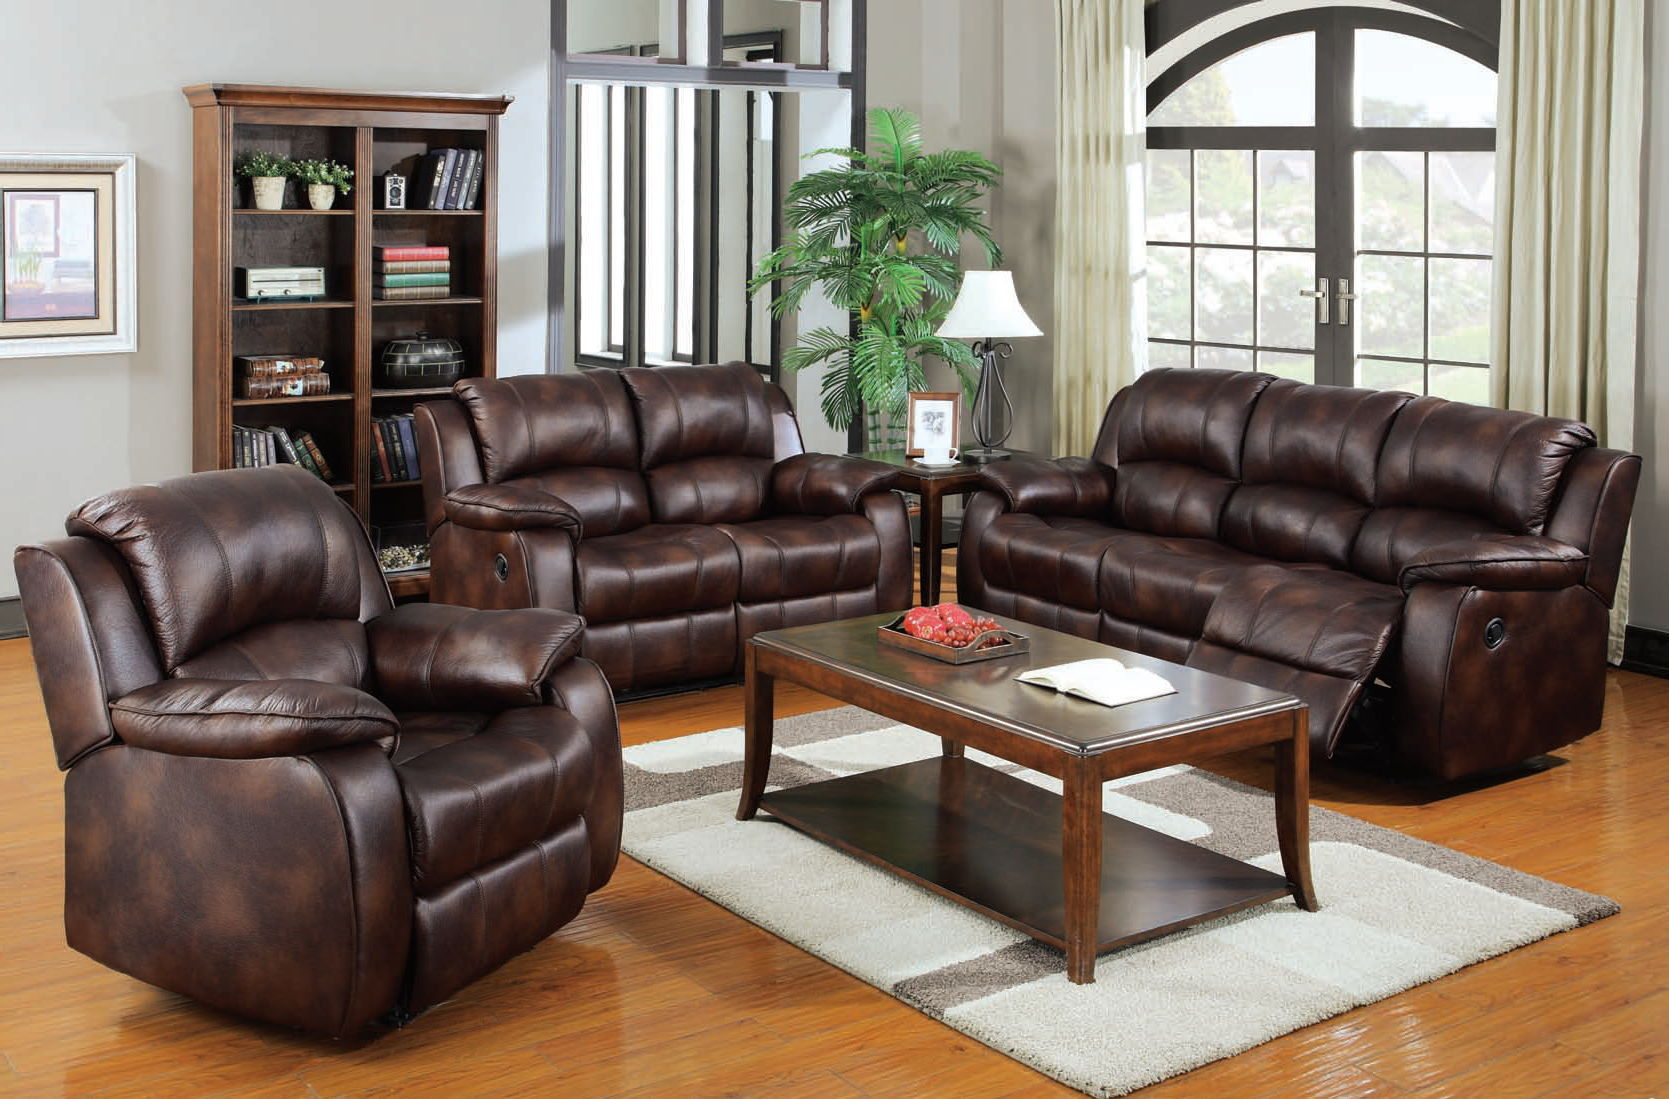 Zanthe brown suede wood cushion back living room set - Brown suede living room furniture ...